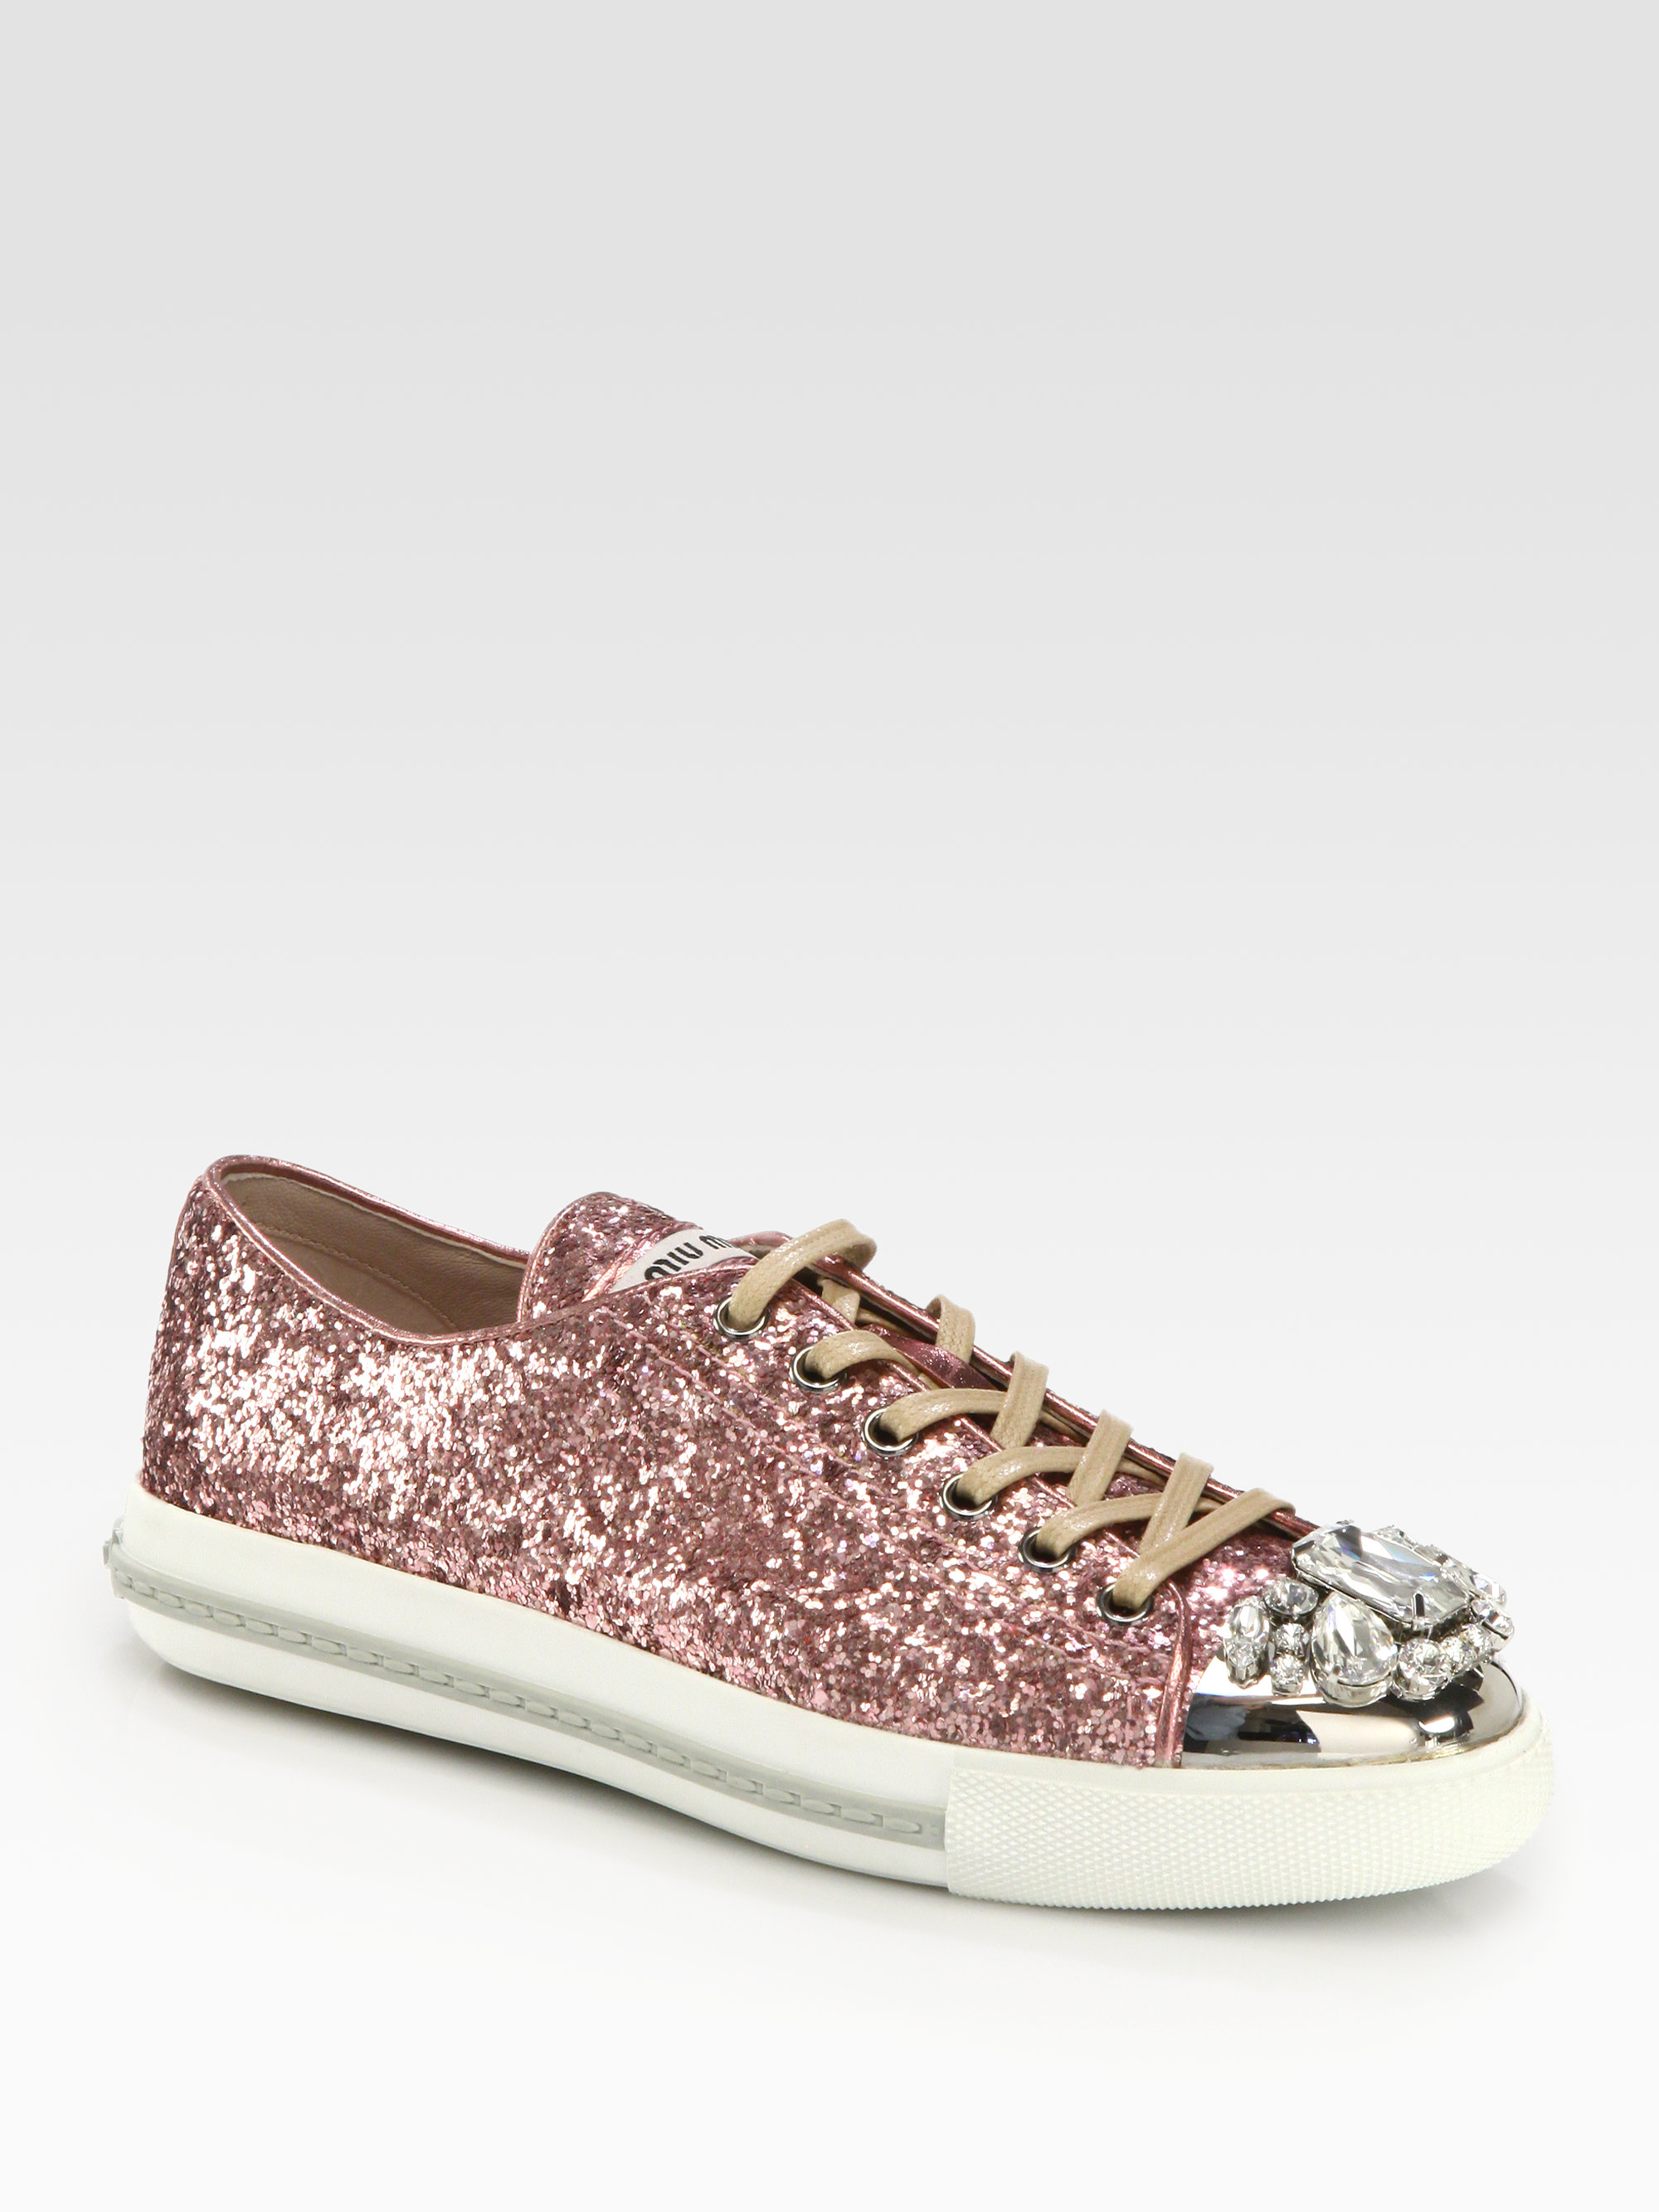 Miu miu Glitter Jeweled Laceup Sneakers in Pink | Lyst Fergie Shoes